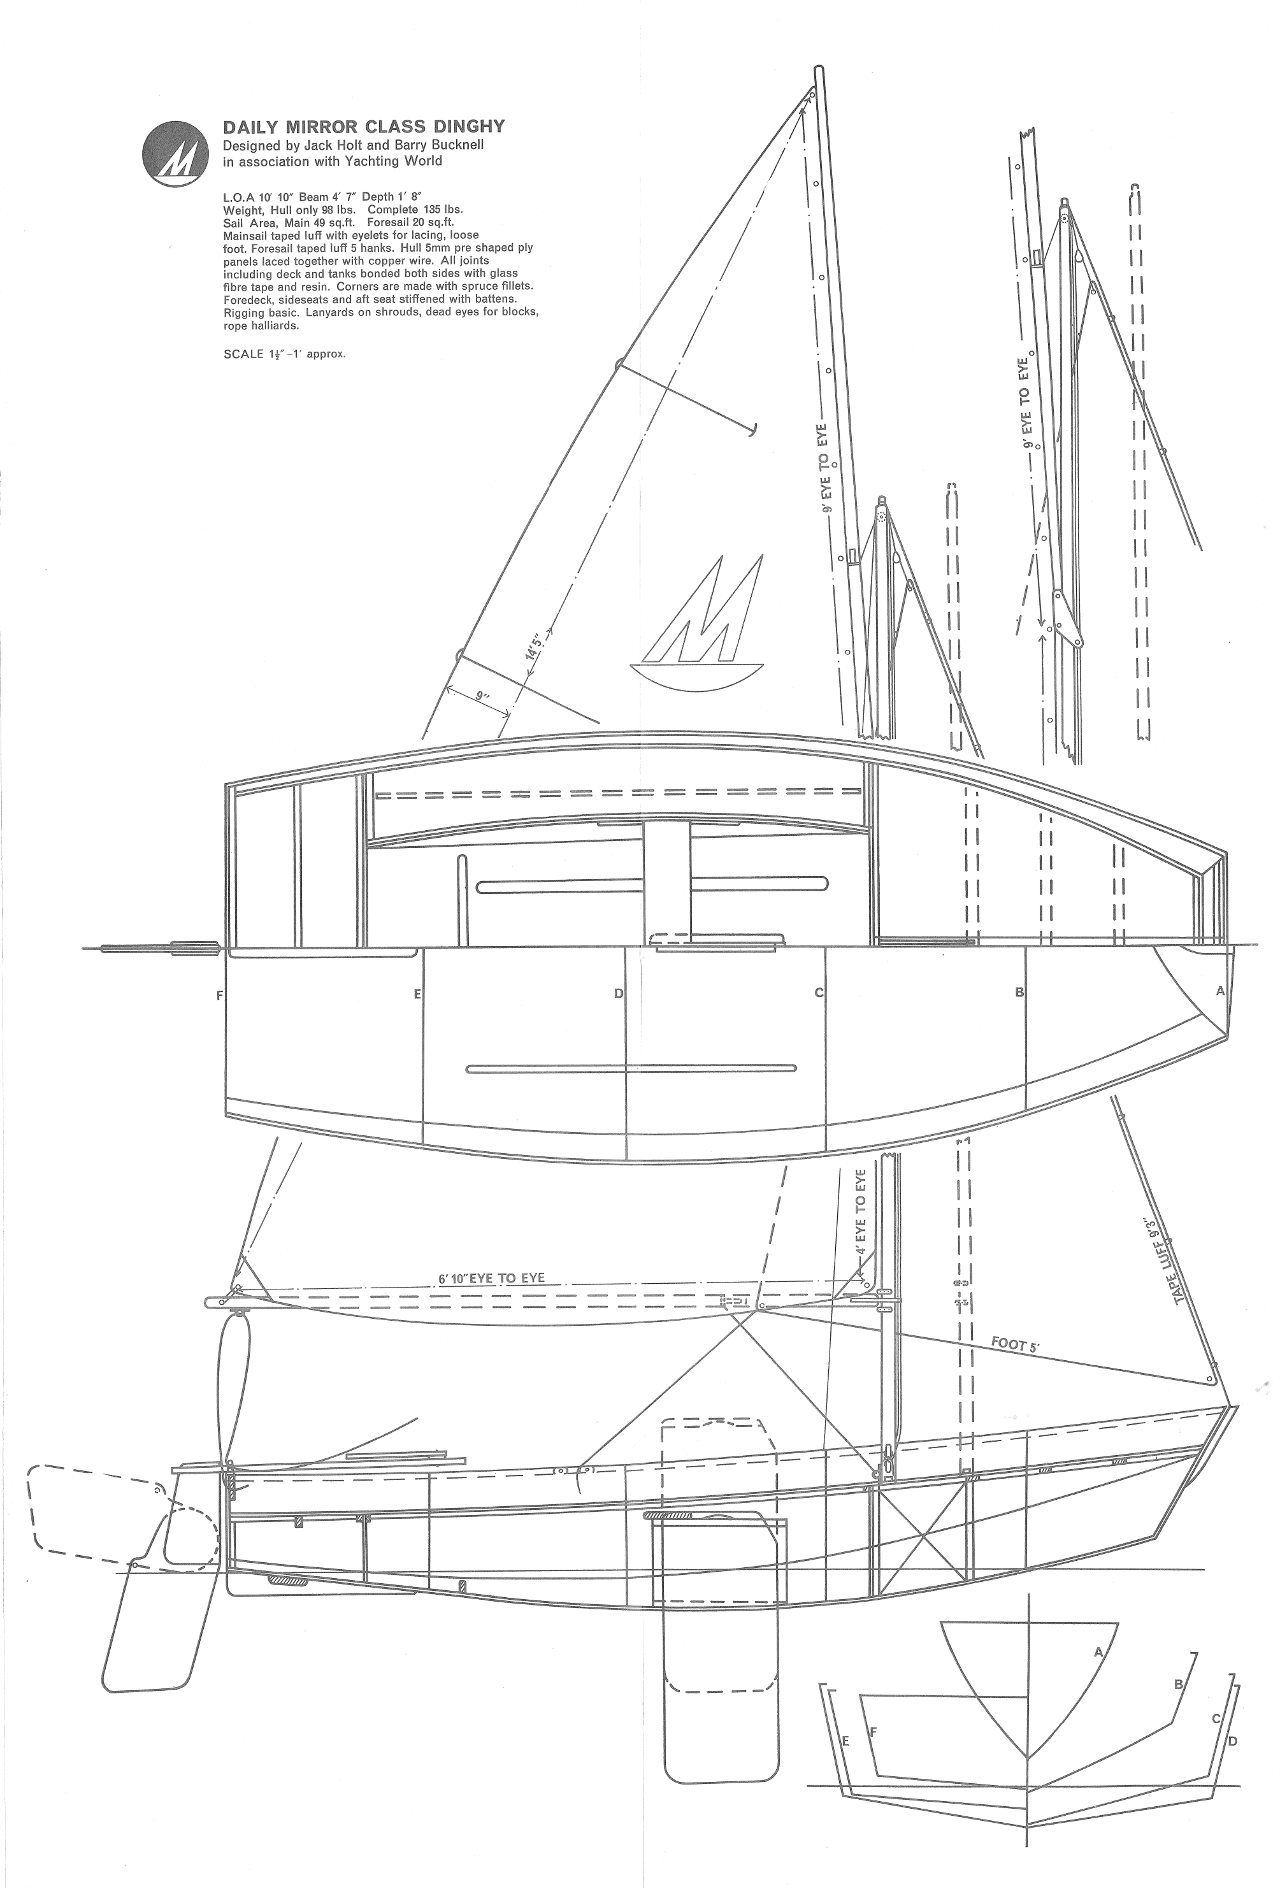 A technical specification drawing of a Mirror dinghy dating to around 1963